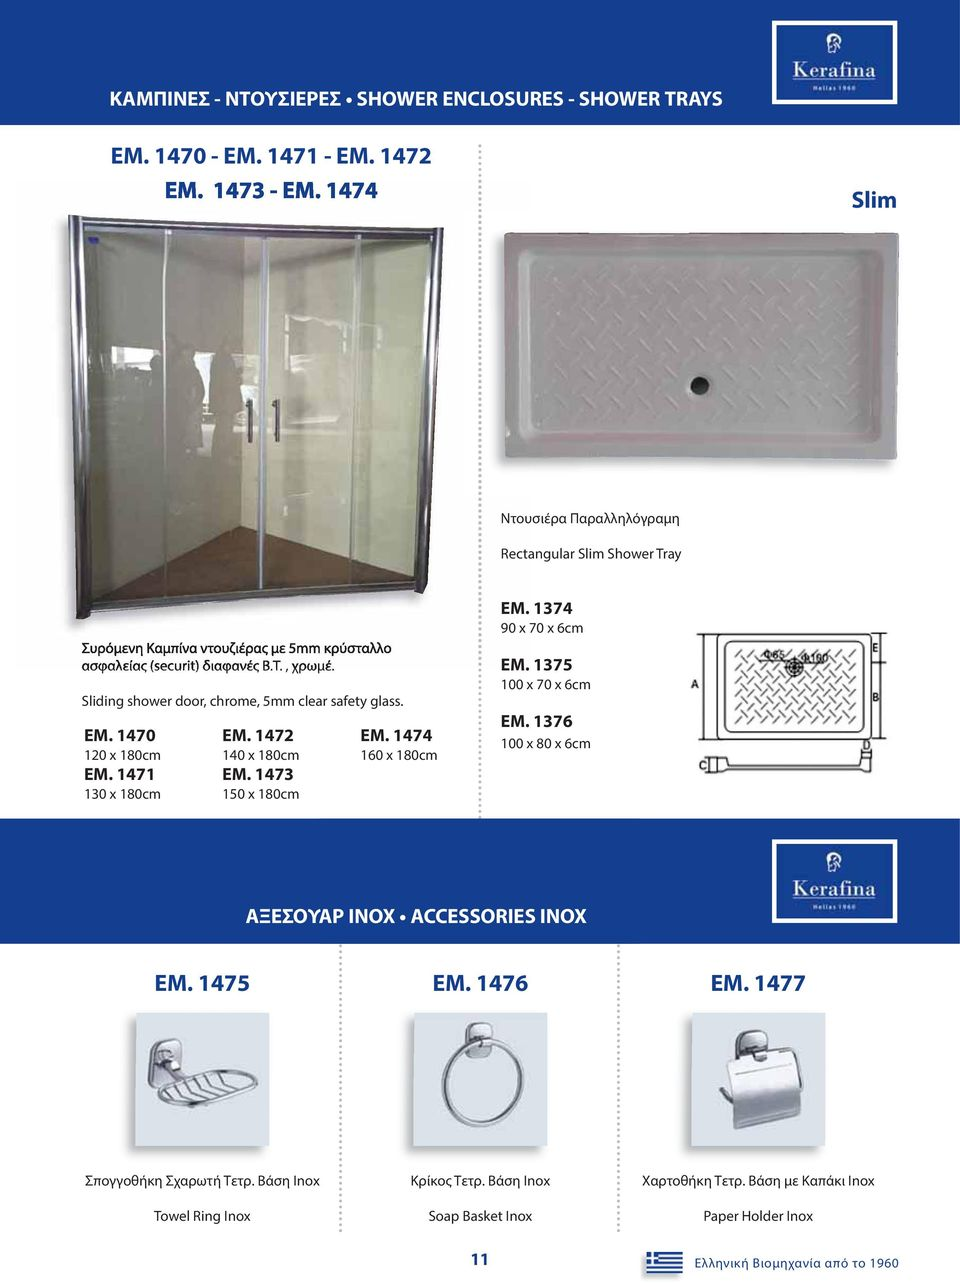 Sliding shower door, chrome, 5mm clear safety glass. EM. 1470 120 x 180cm EM. 1471 130 x 180cm EM. 1472 140 x 180cm EM. 1473 150 x 180cm EM. 1474 160 x 180cm EM.